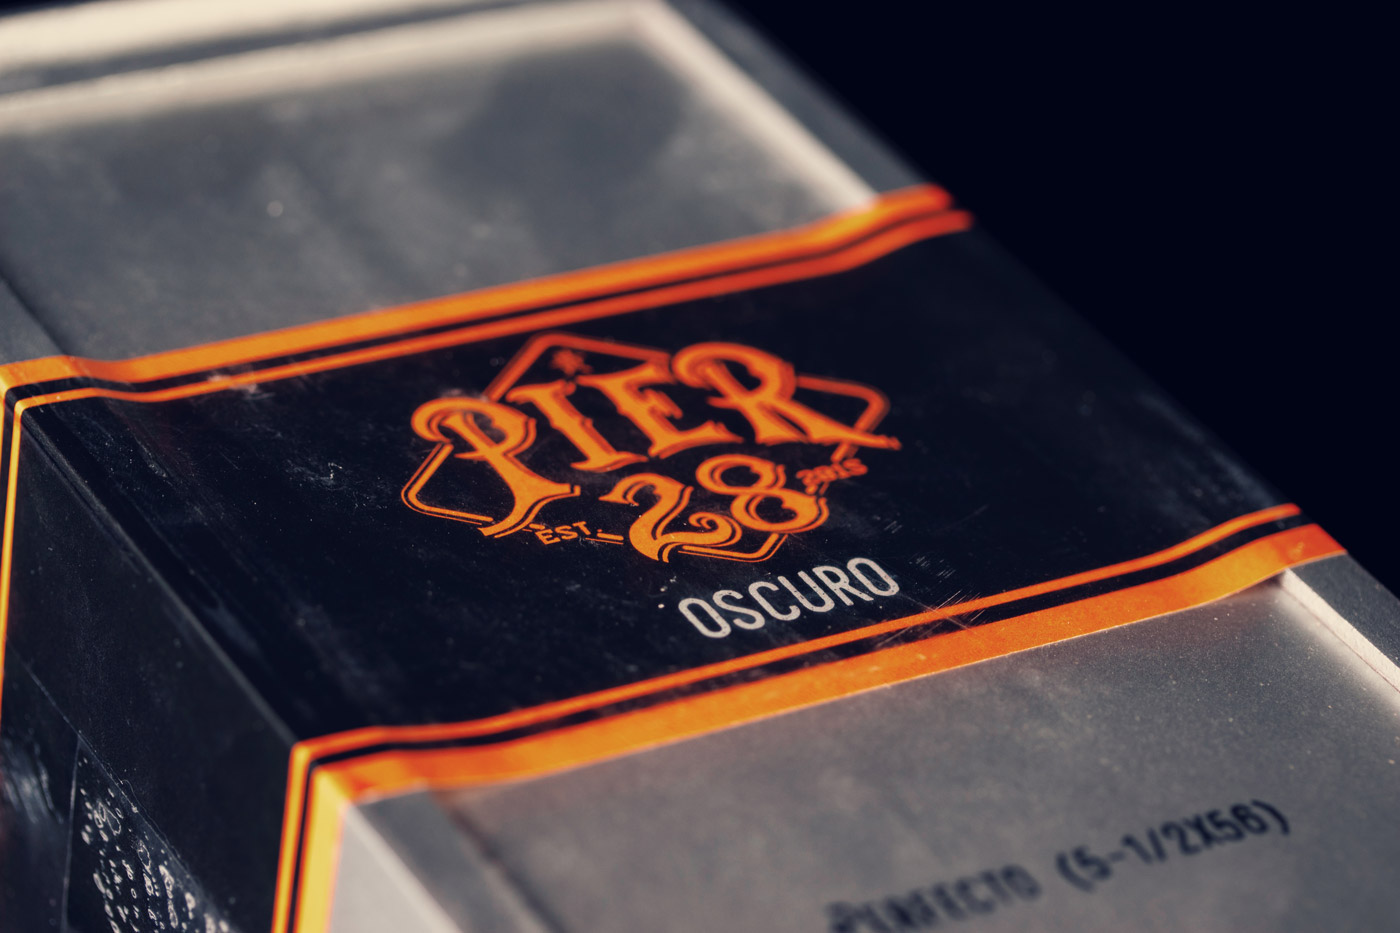 Pier 28 Oscuro cigar box lid closed